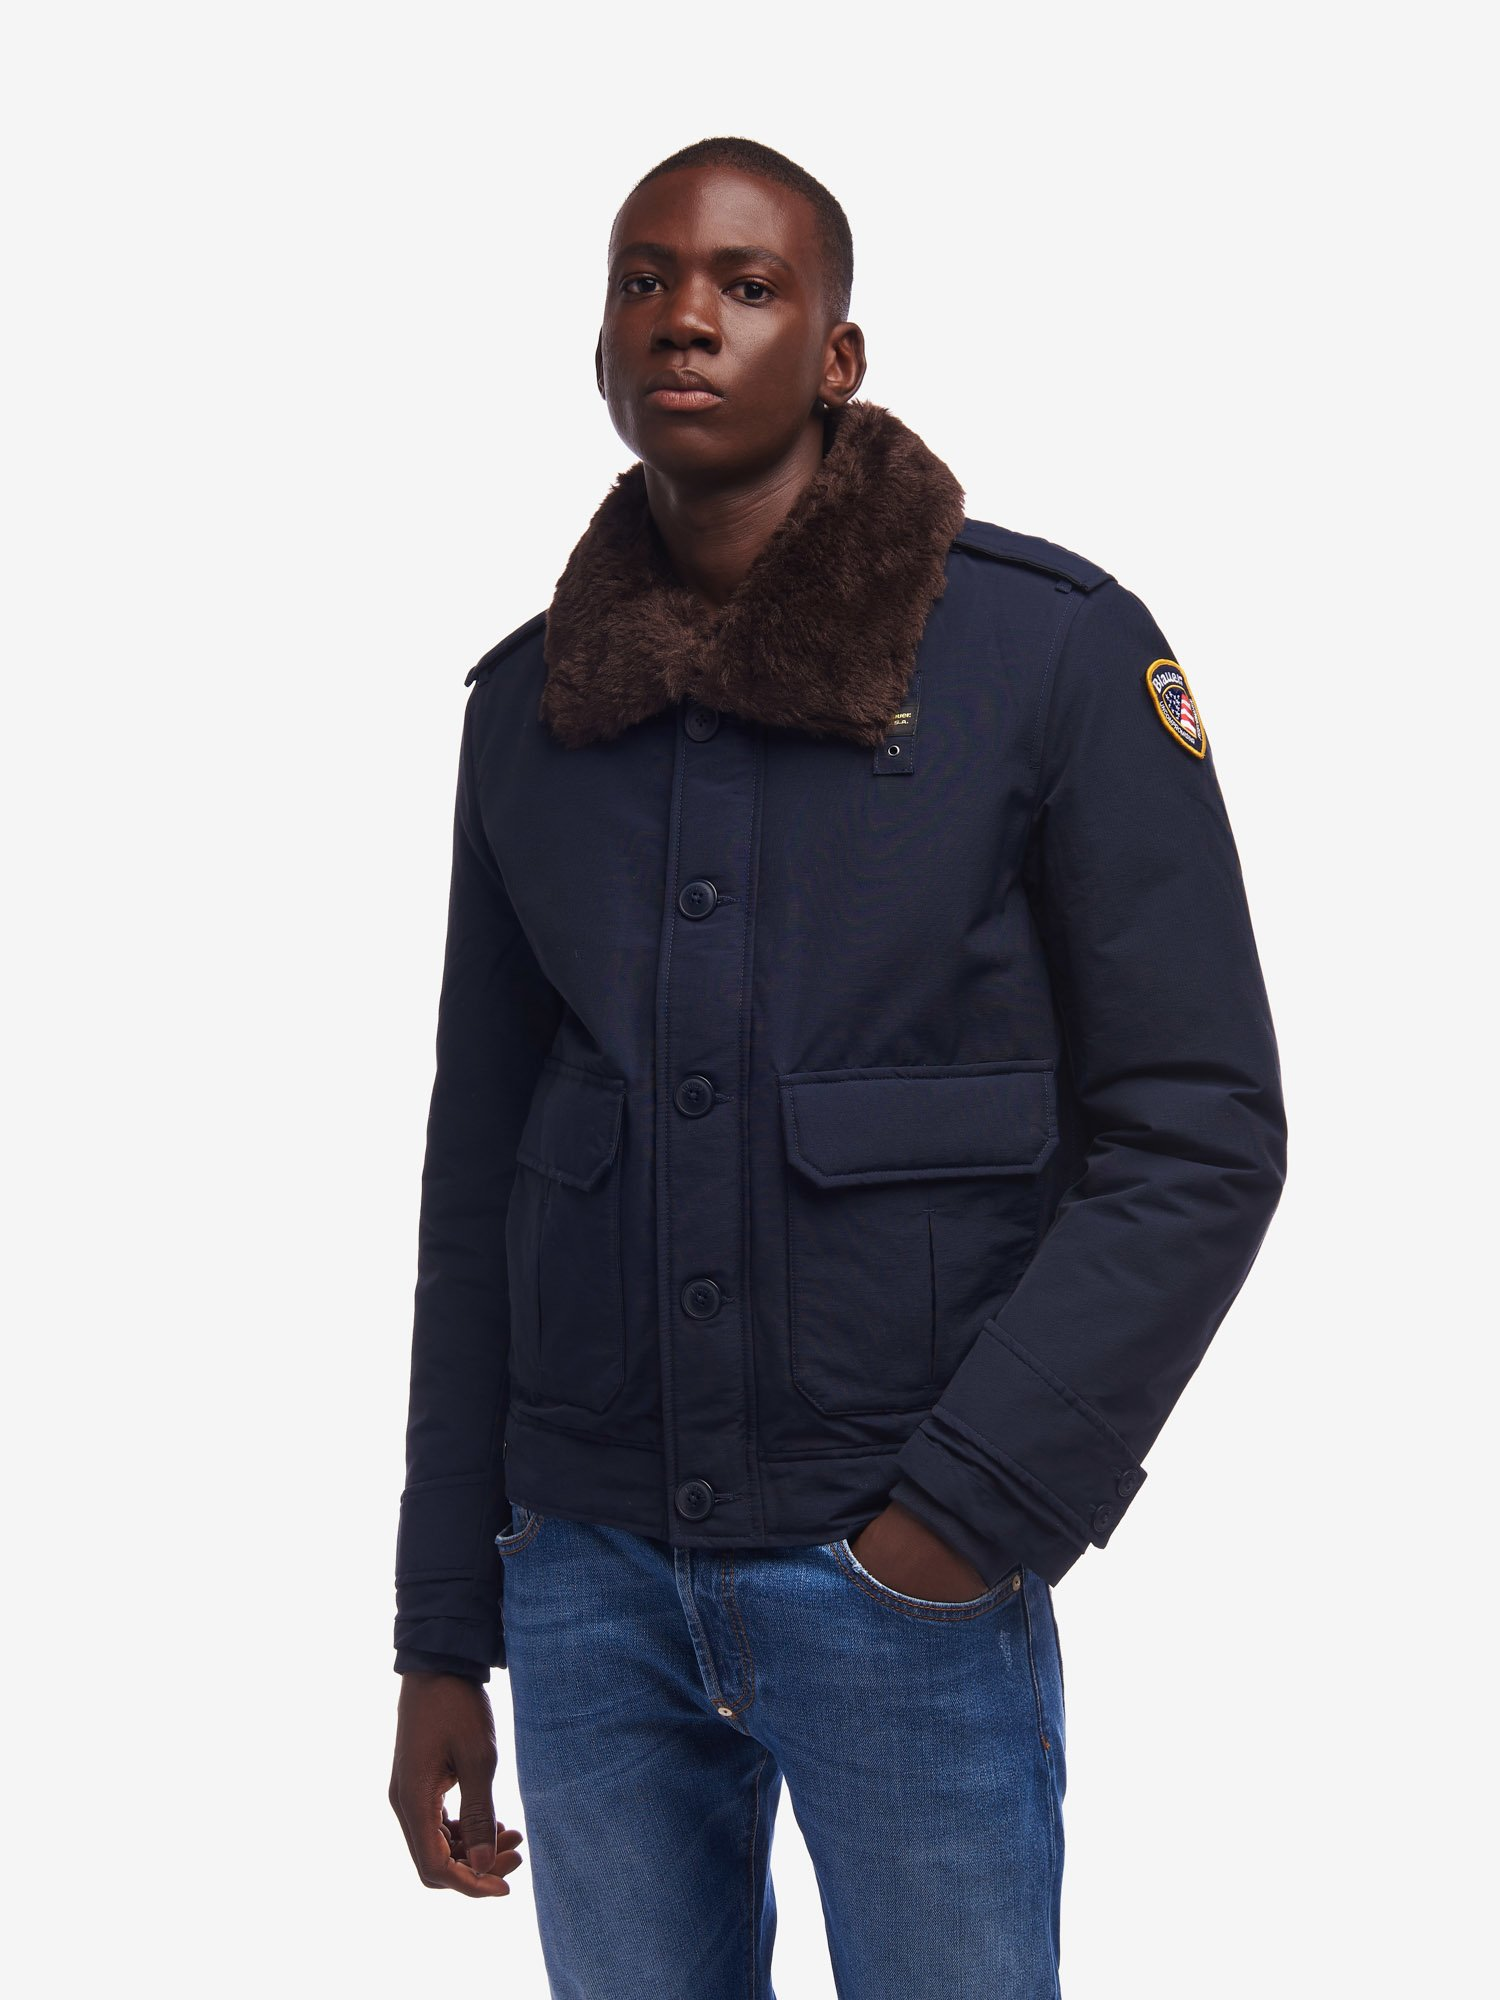 STONE POLICE JACKET WITH ECO-FUR COLLAR - Blauer